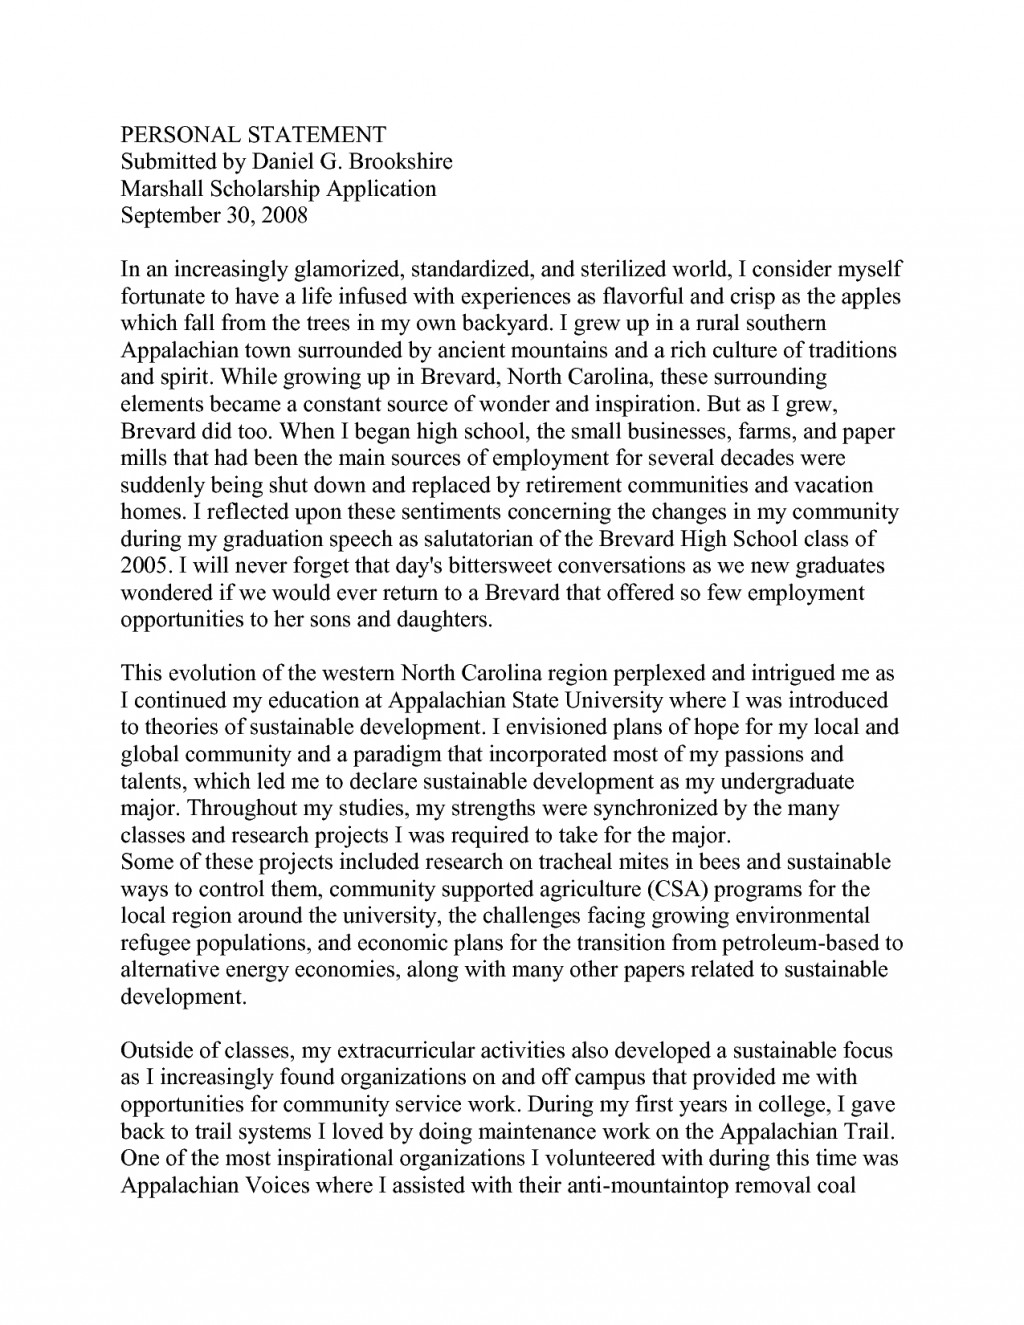 016 Essay Example Scholarship Personal Statement Template Nsvwiupr Sensational Format Sample College Essays For Writing Large